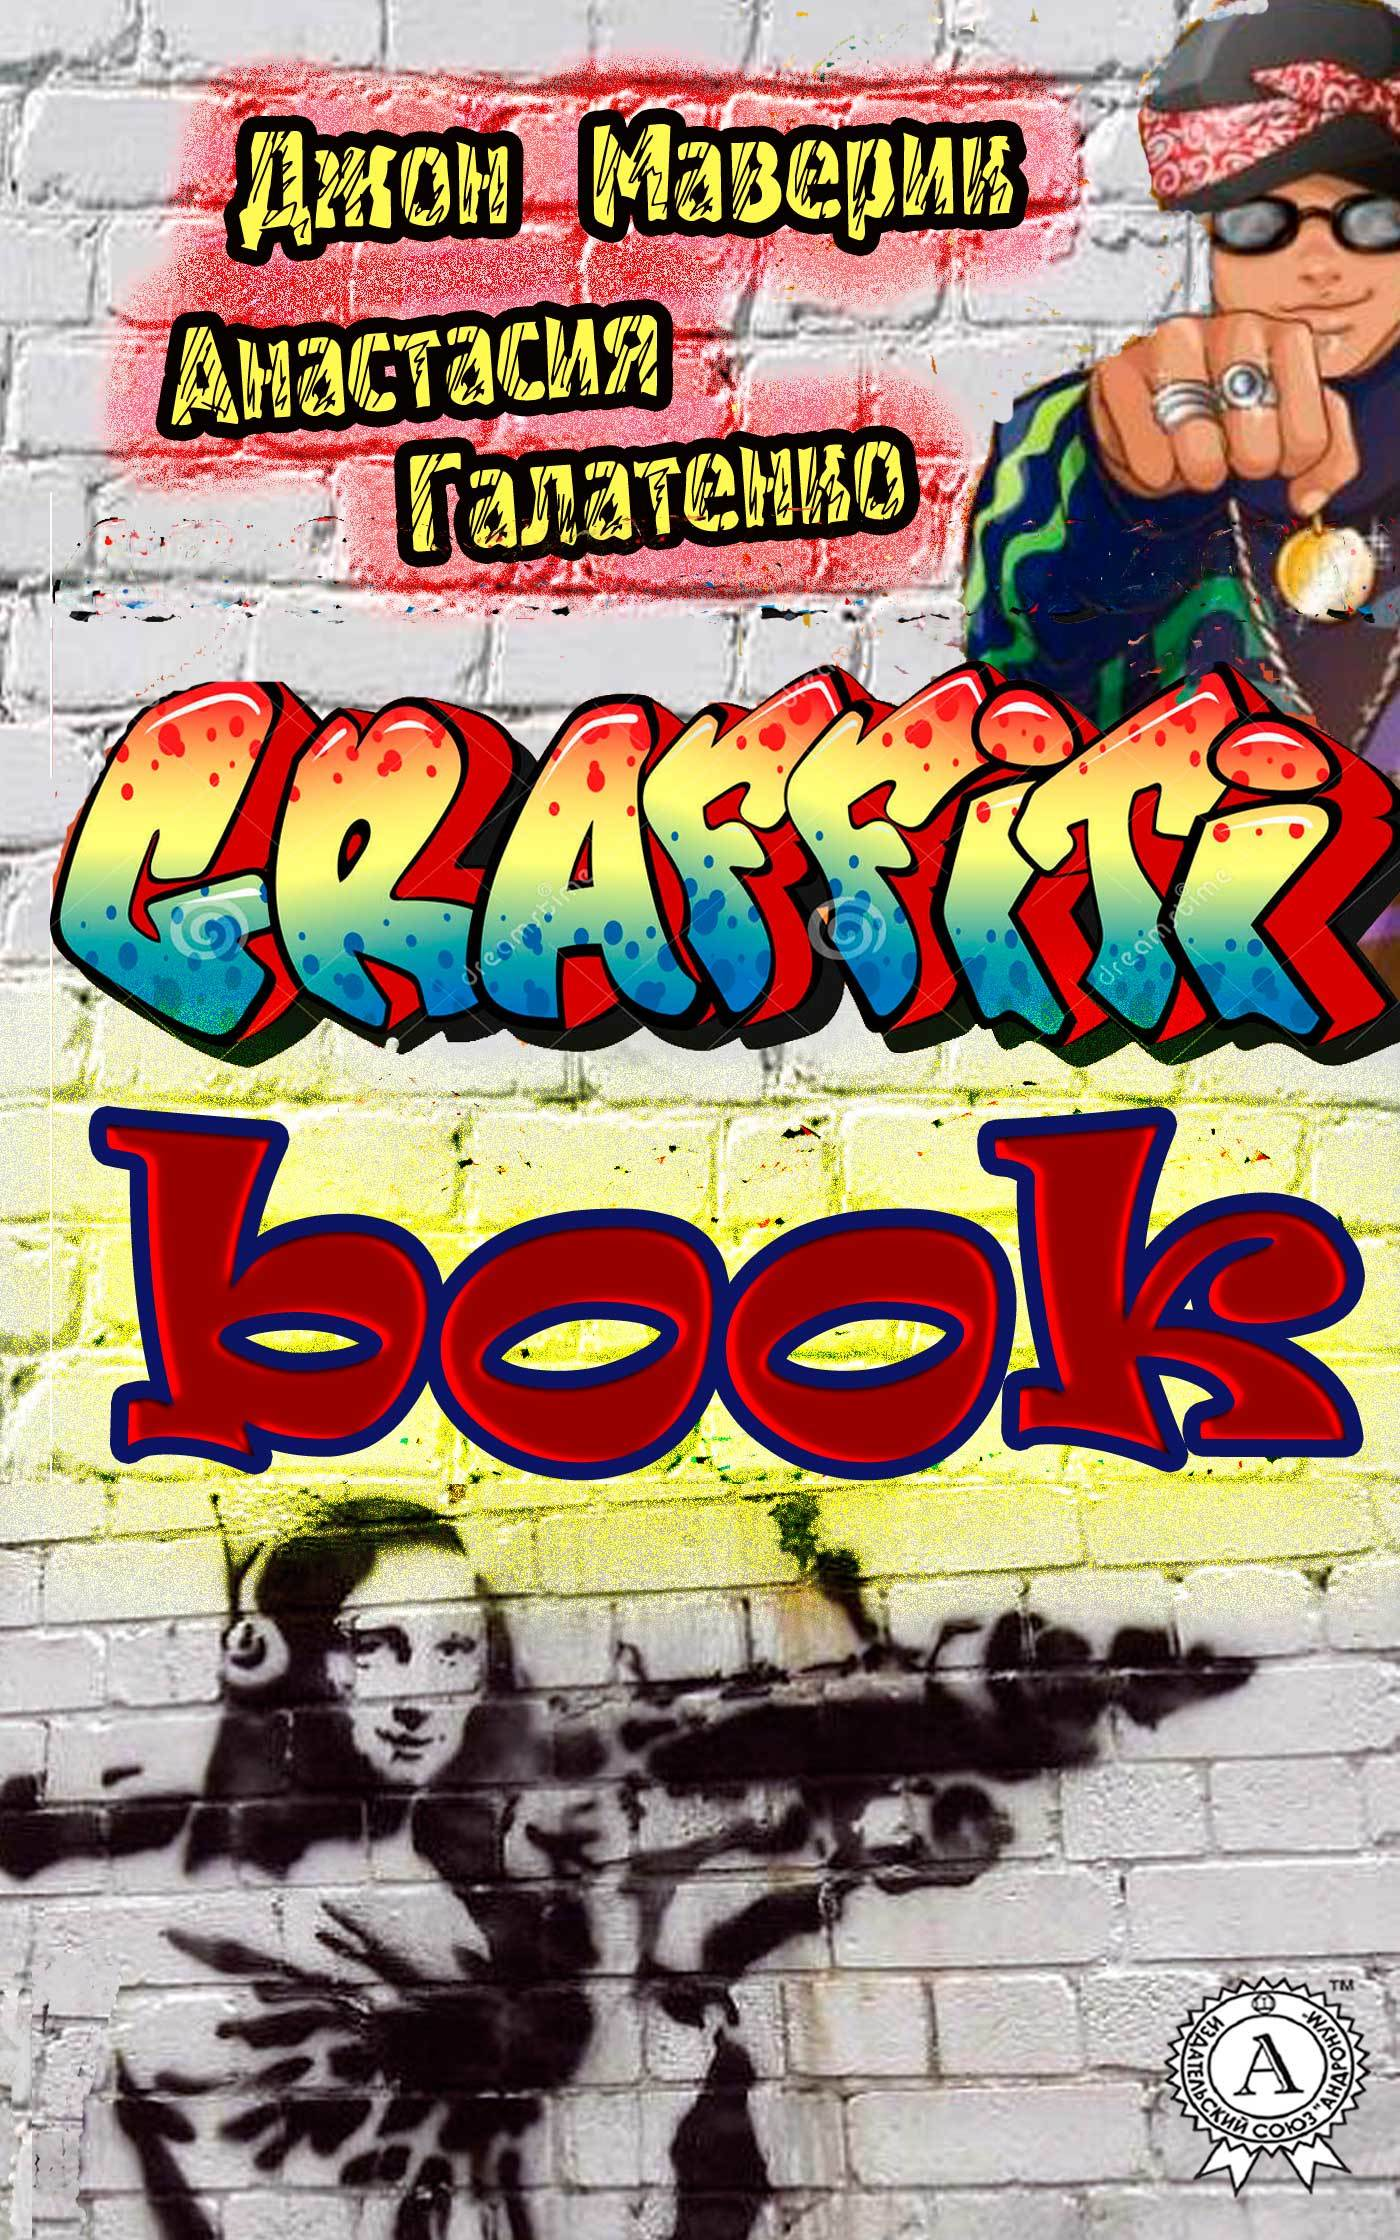 Graffitibook/